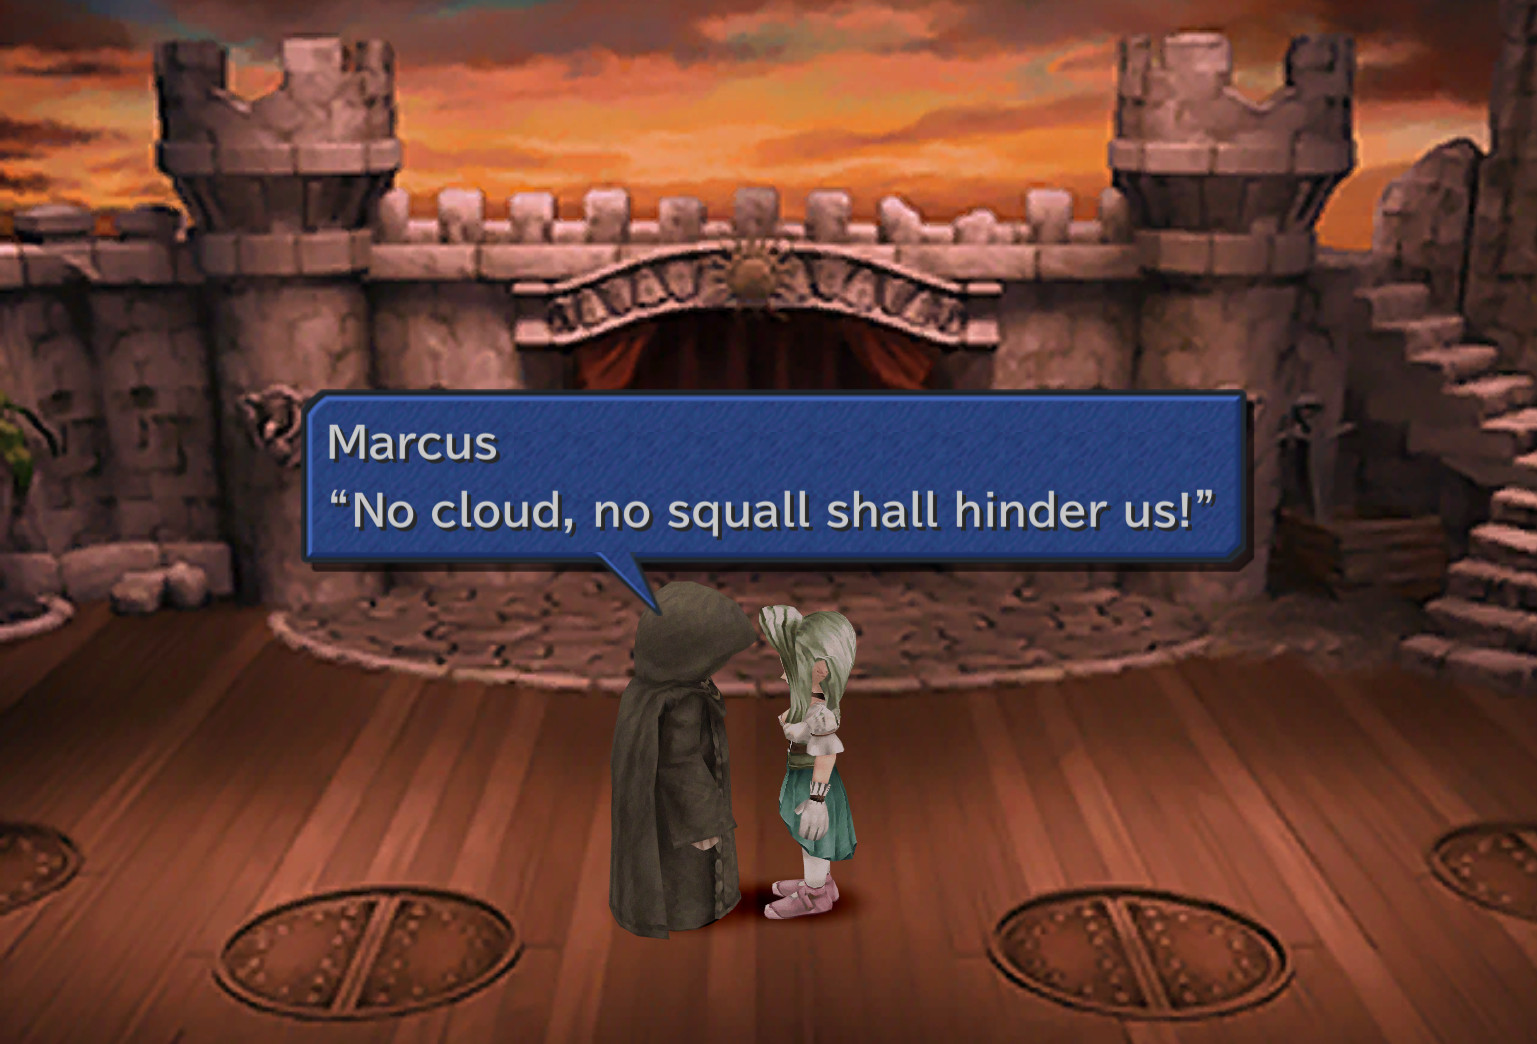 Zidane_ref_Cloud_and_Squall.jpg